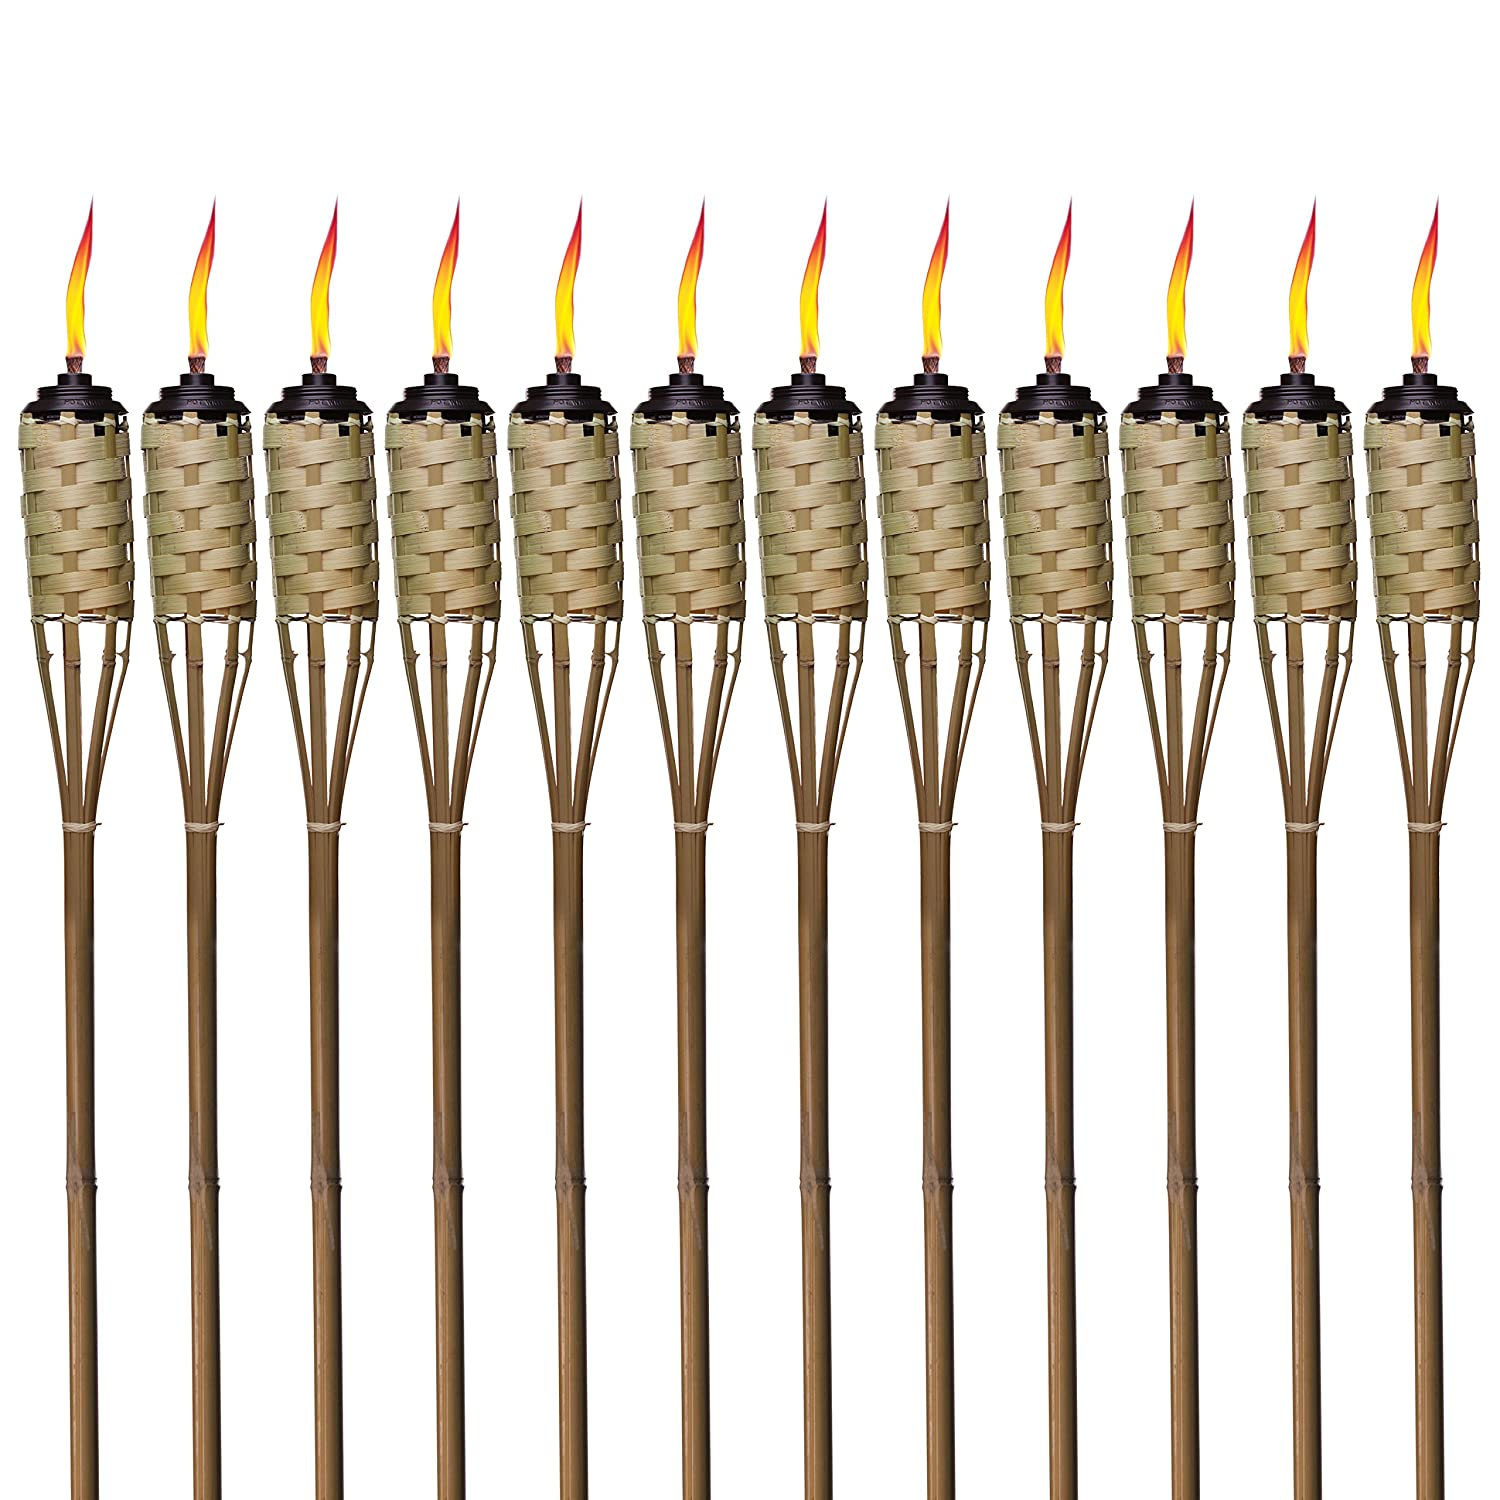 low priced 9ffa2 050ec TIKI Brand 1118137 Brown Easy Pour 12-Pack 57 Inch Tiki Torch Bamboo  Classic Weave